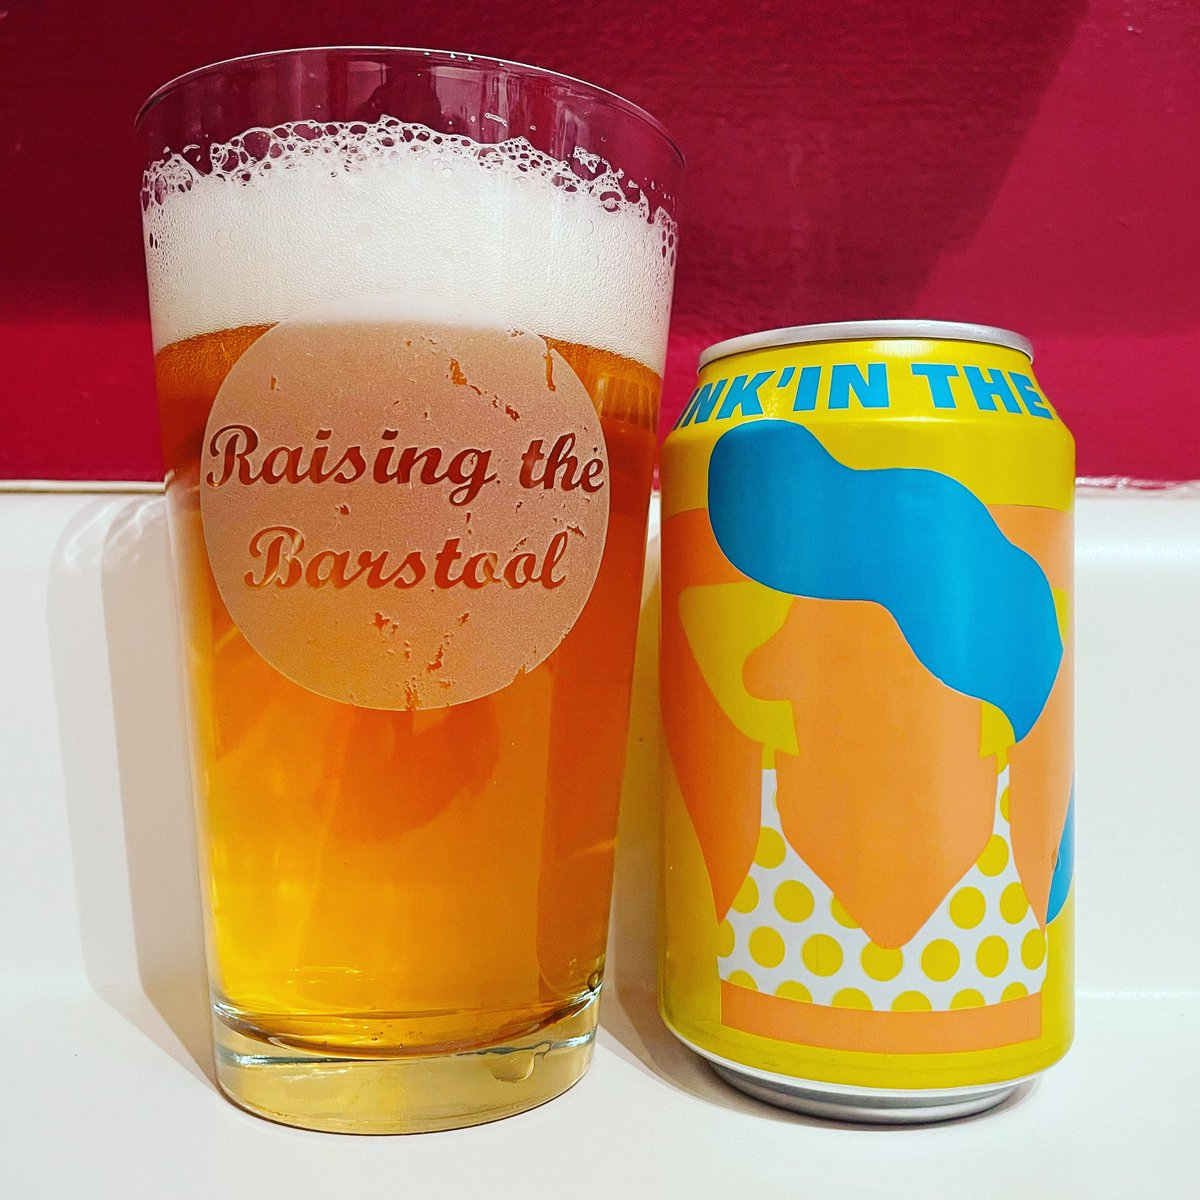 Drink'in the Sun from Mikkeller in my new glass! #DryJanuary